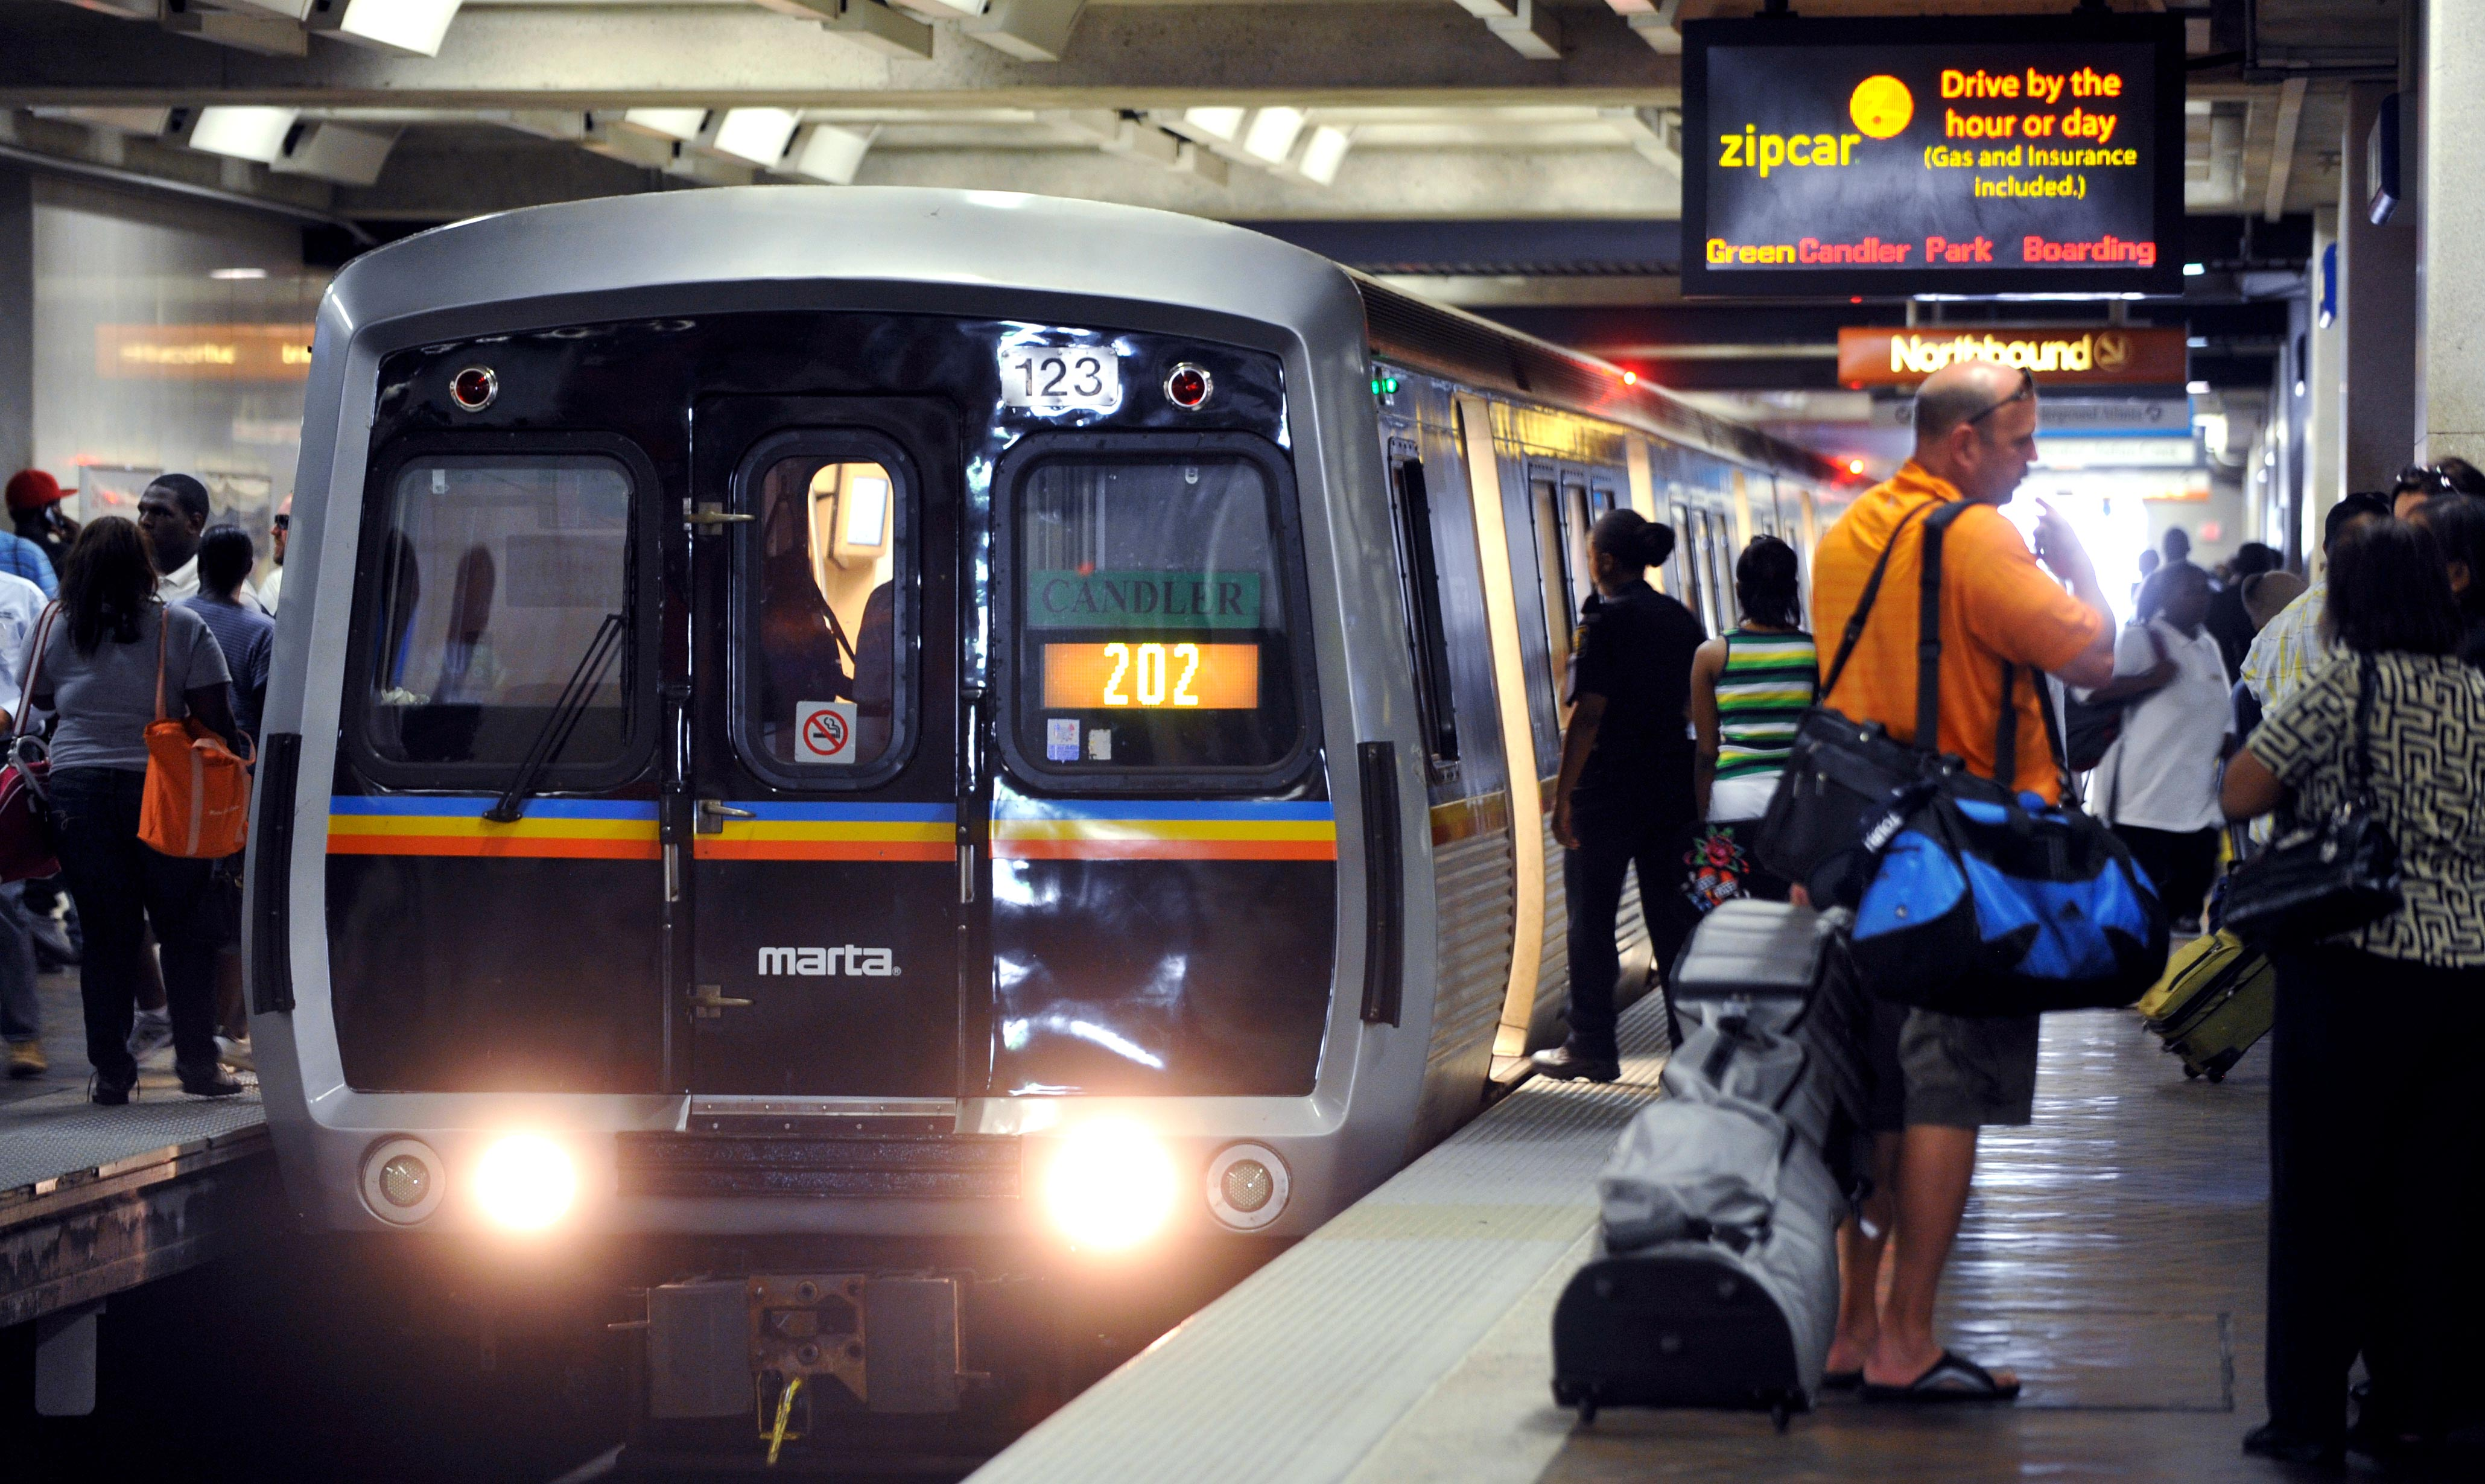 MARTA CEO: $100B (!) in transit investment needed for Atlanta to compete